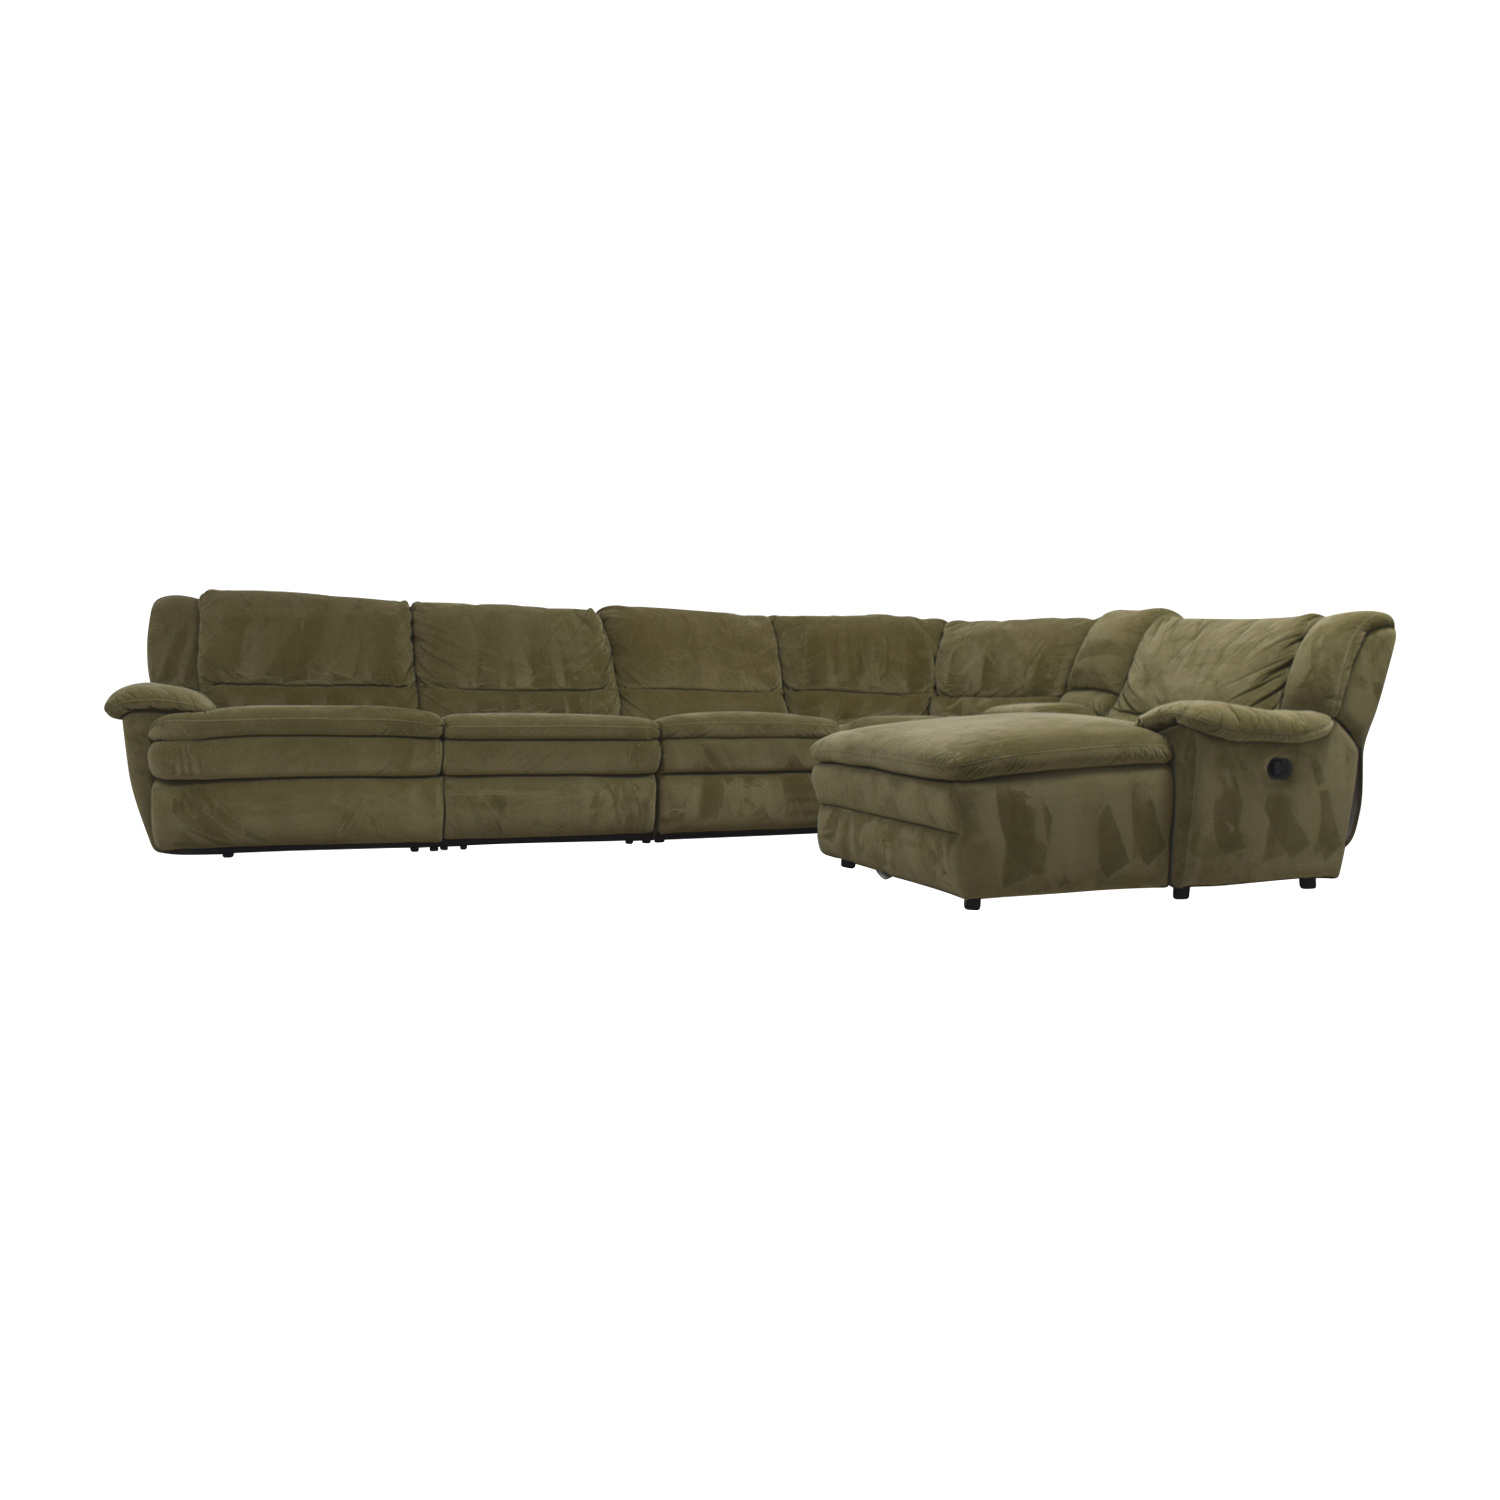 Bob's Furniture Bob's Furniture Grey L-Shaped Reclining Sectional price